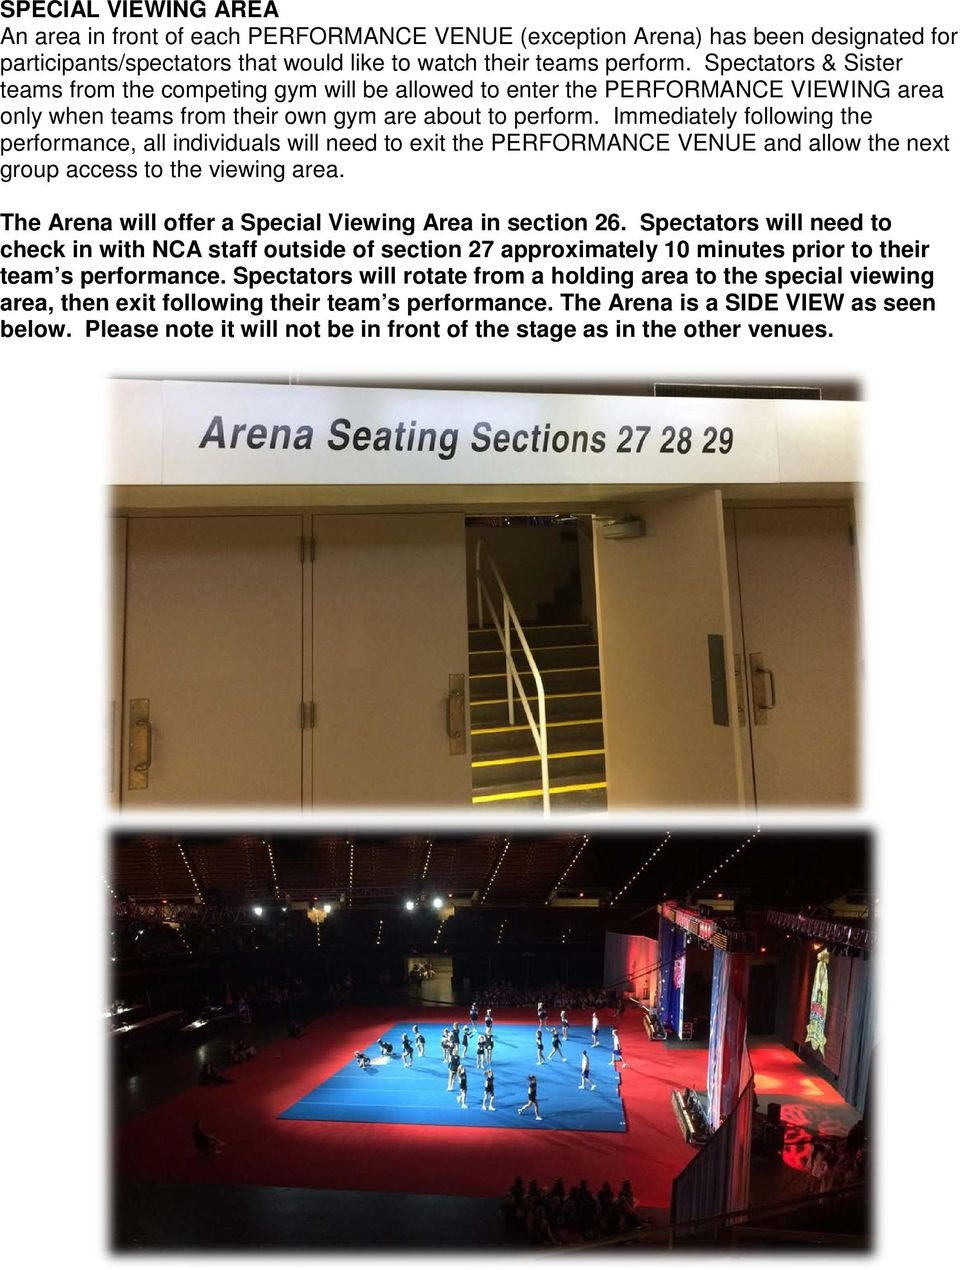 Immediately following the performance, all individuals will need to exit the PERFORMANCE VENUE and allow the next group access to the viewing area.